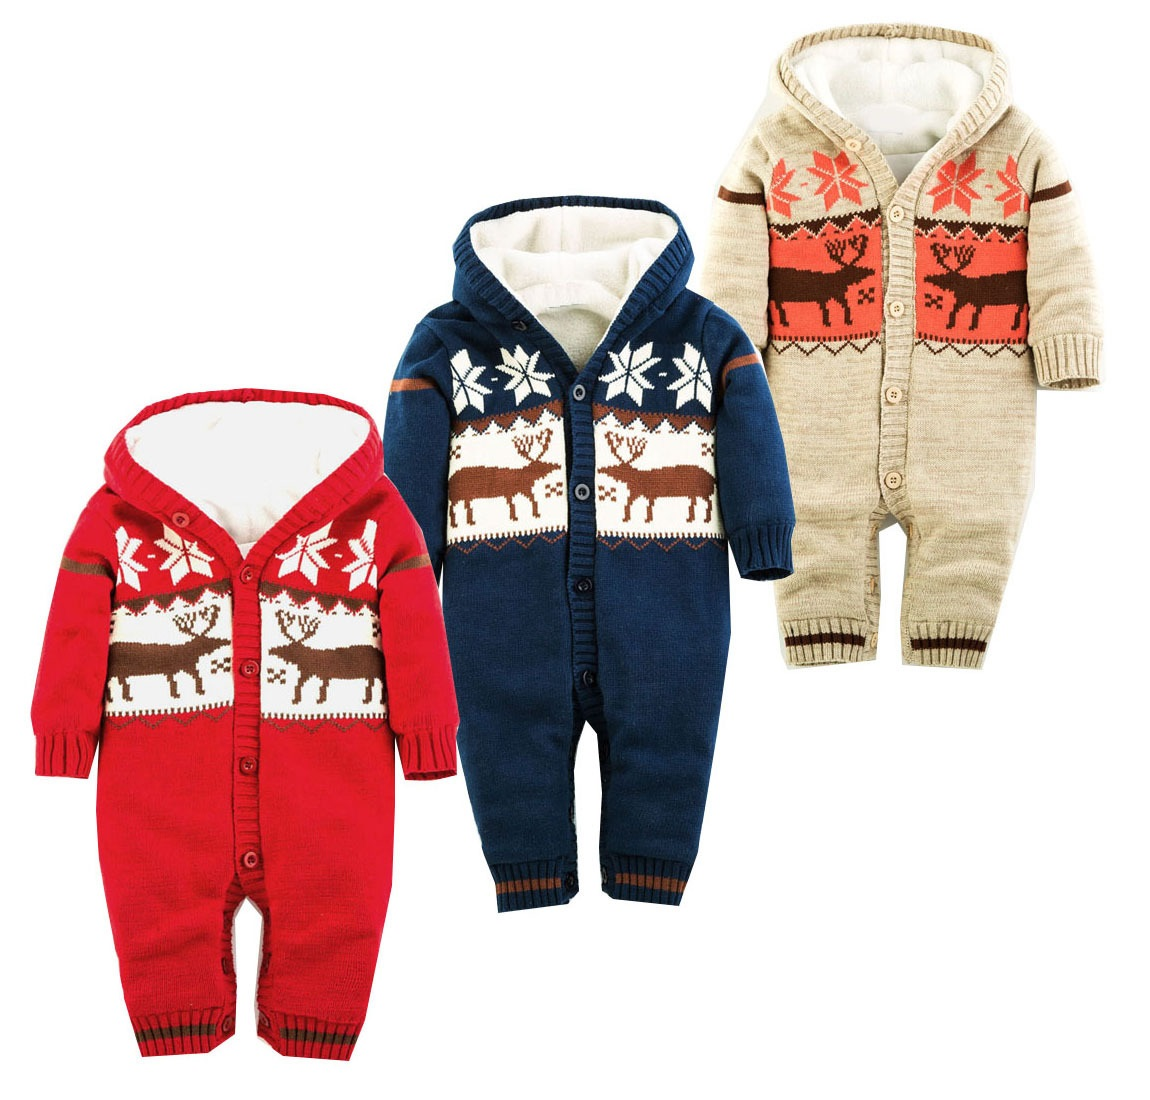 Autumn Winter Baby Romper Cotton Hooded Deer Pattern Newborn Baby Clothing Fashion Infant Costume Toddler Girl Rompers new 2016 autumn winter romper infant clothing baby girl cotton rompers kids cartoon monkey jumpsuit newborn overall baby costume